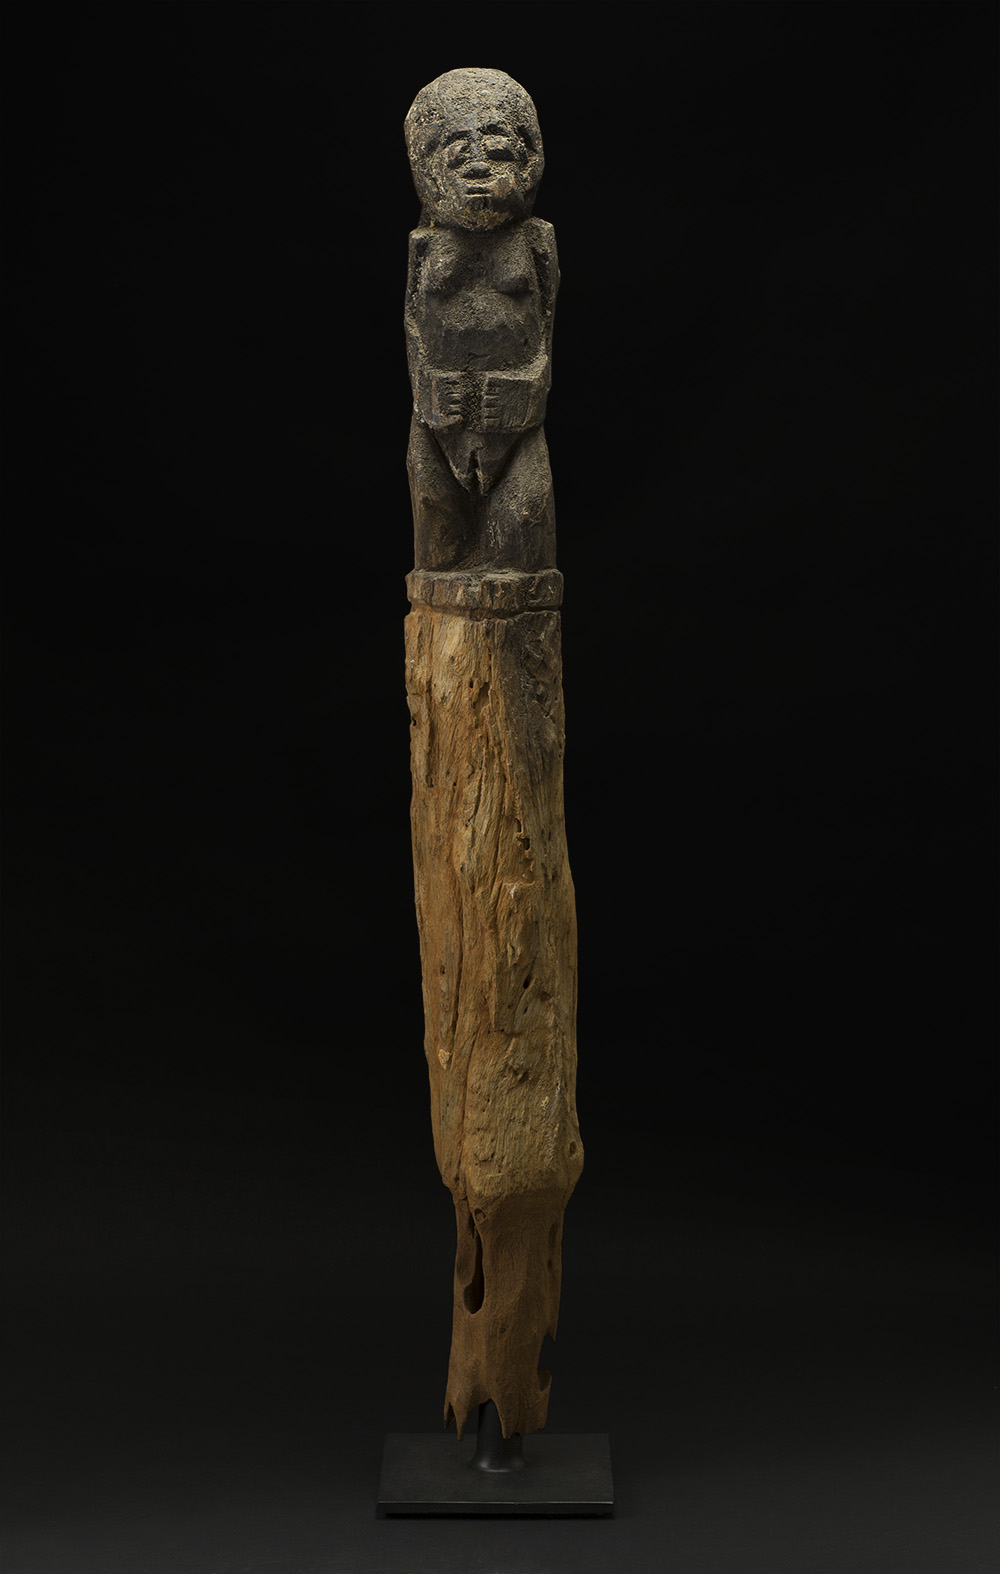 Africa    Bocio - Fon People - Benin  , Early 20th C. Wood, sacrificial materials 48 x 5.5 x 5 inches 121.9 x 14 x 12.7 cm Af 333